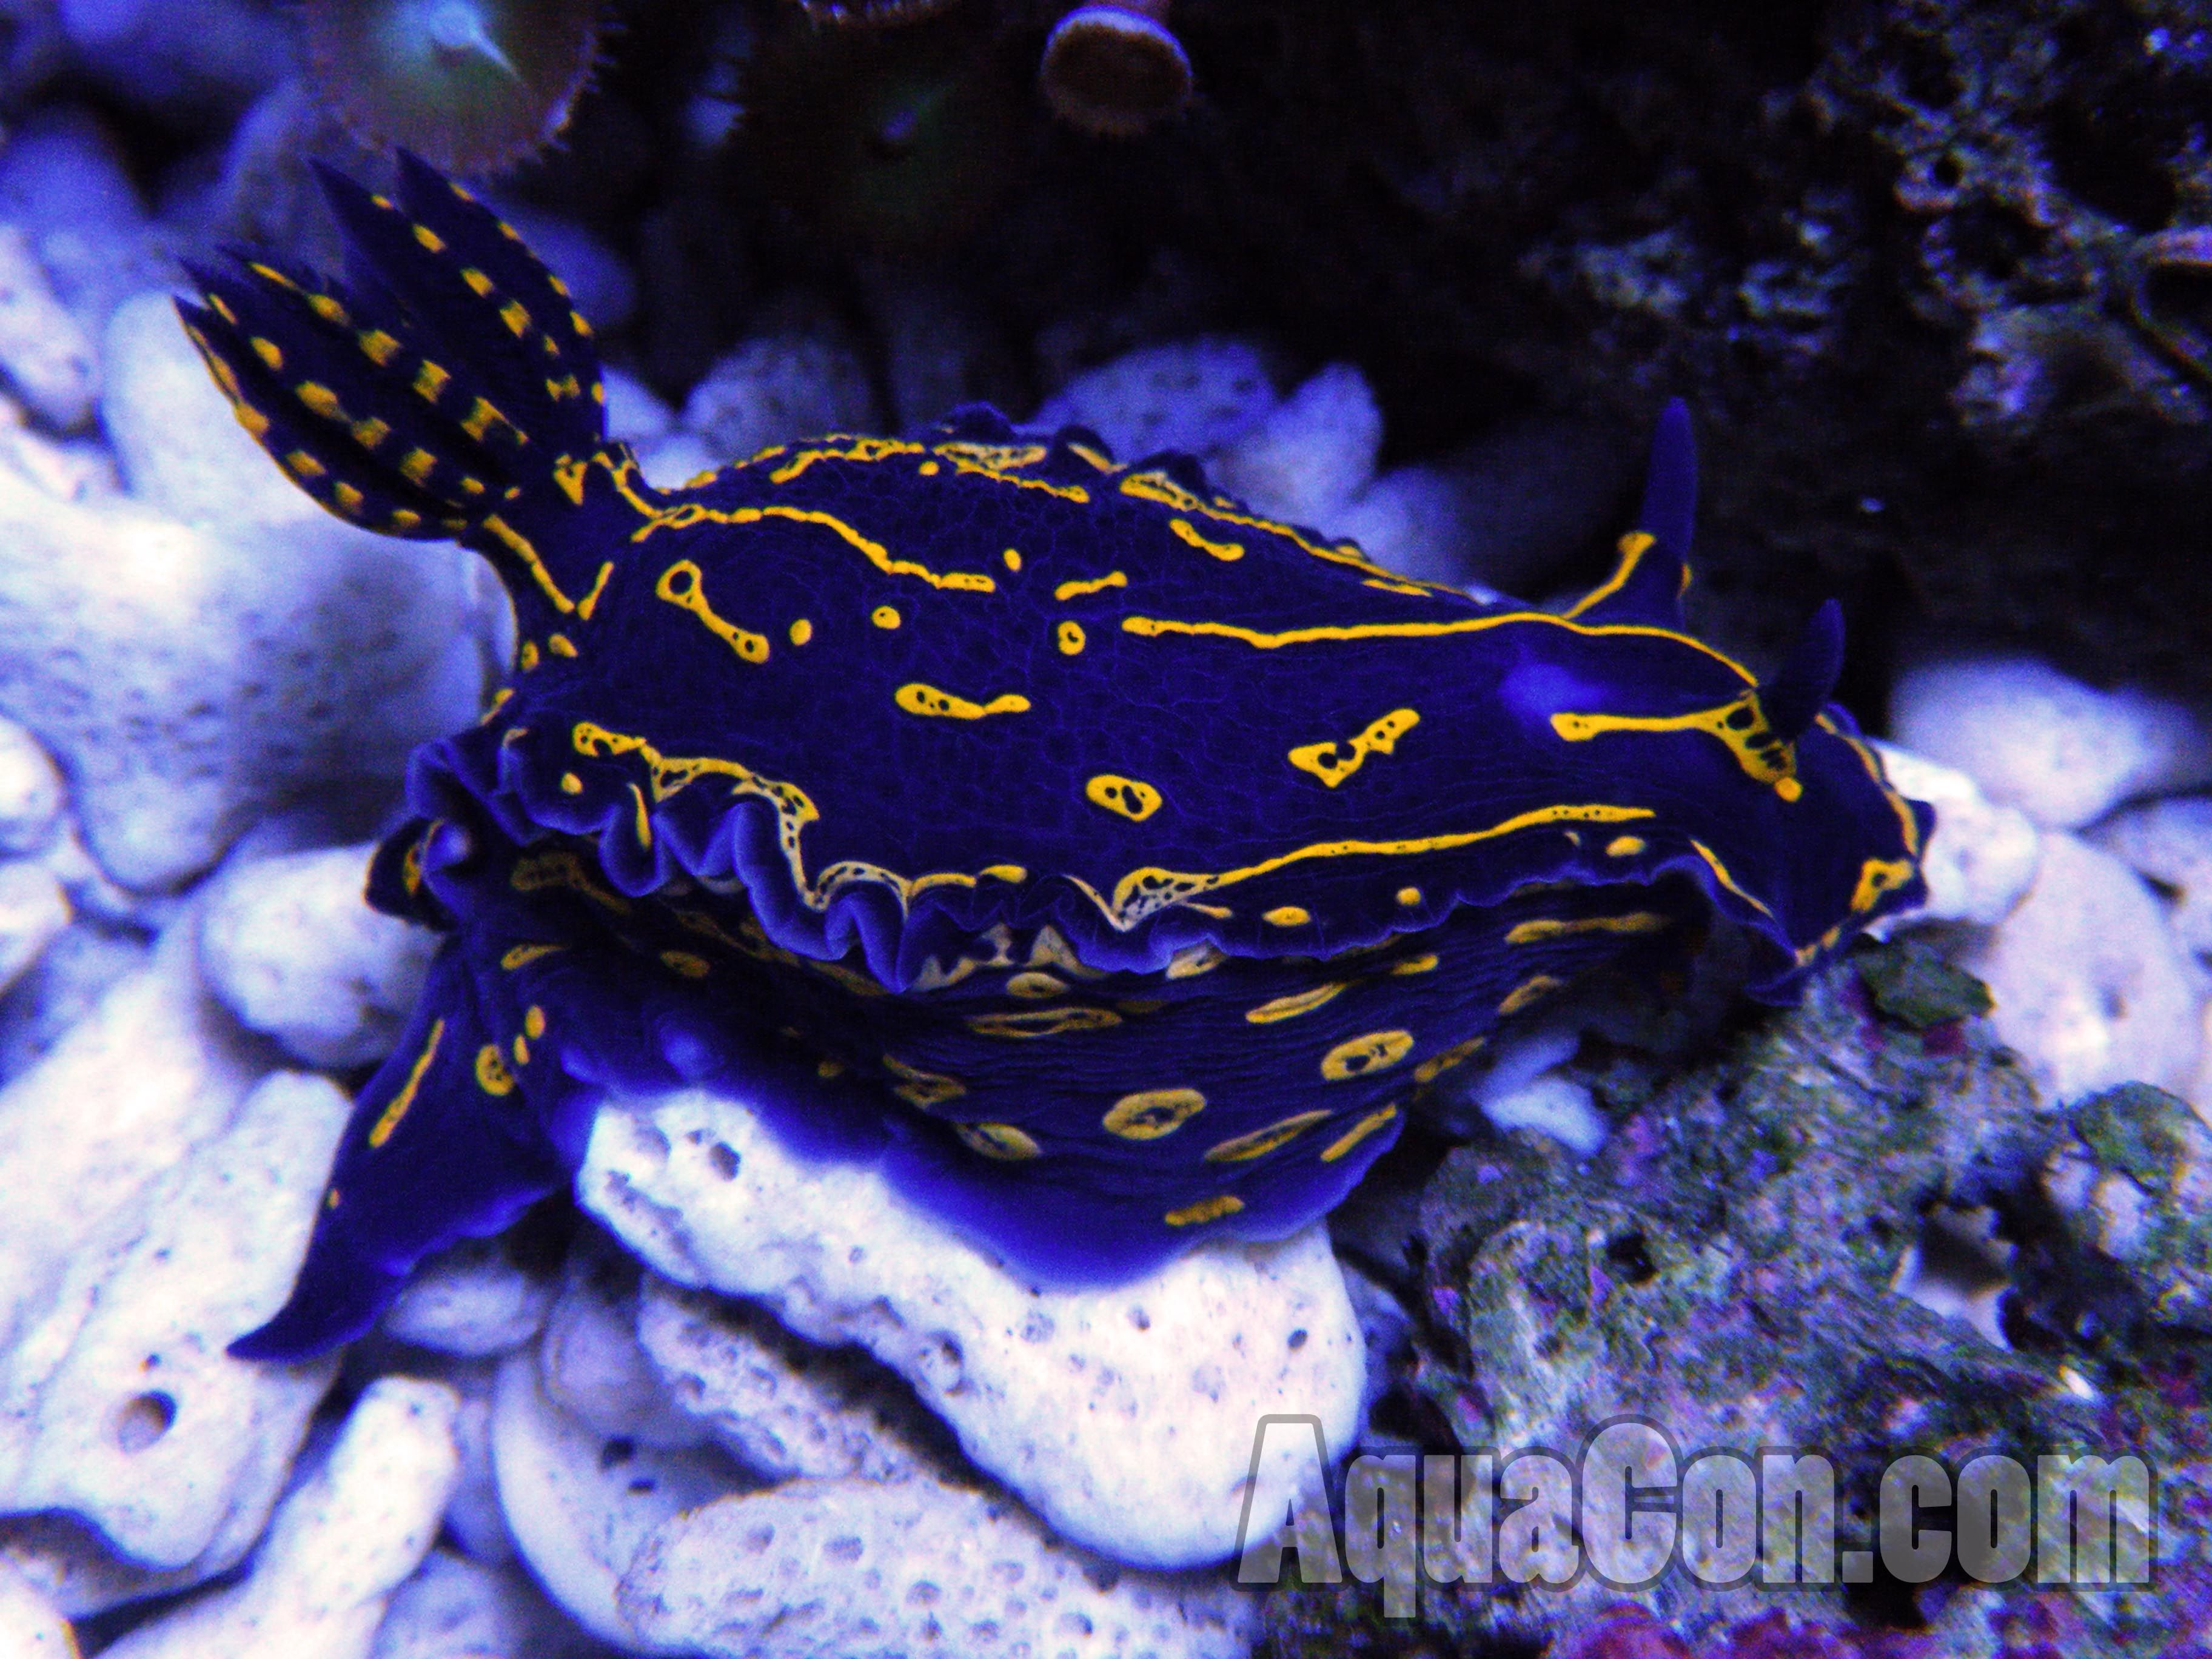 Sea Slugs Are Also Called Nudibranch With Care May Be Kept In The Saltwater Reef Aquarium Or Invertebrate Aquar Sea Slug Saltwater Aquarium Fish Aquarium Fish